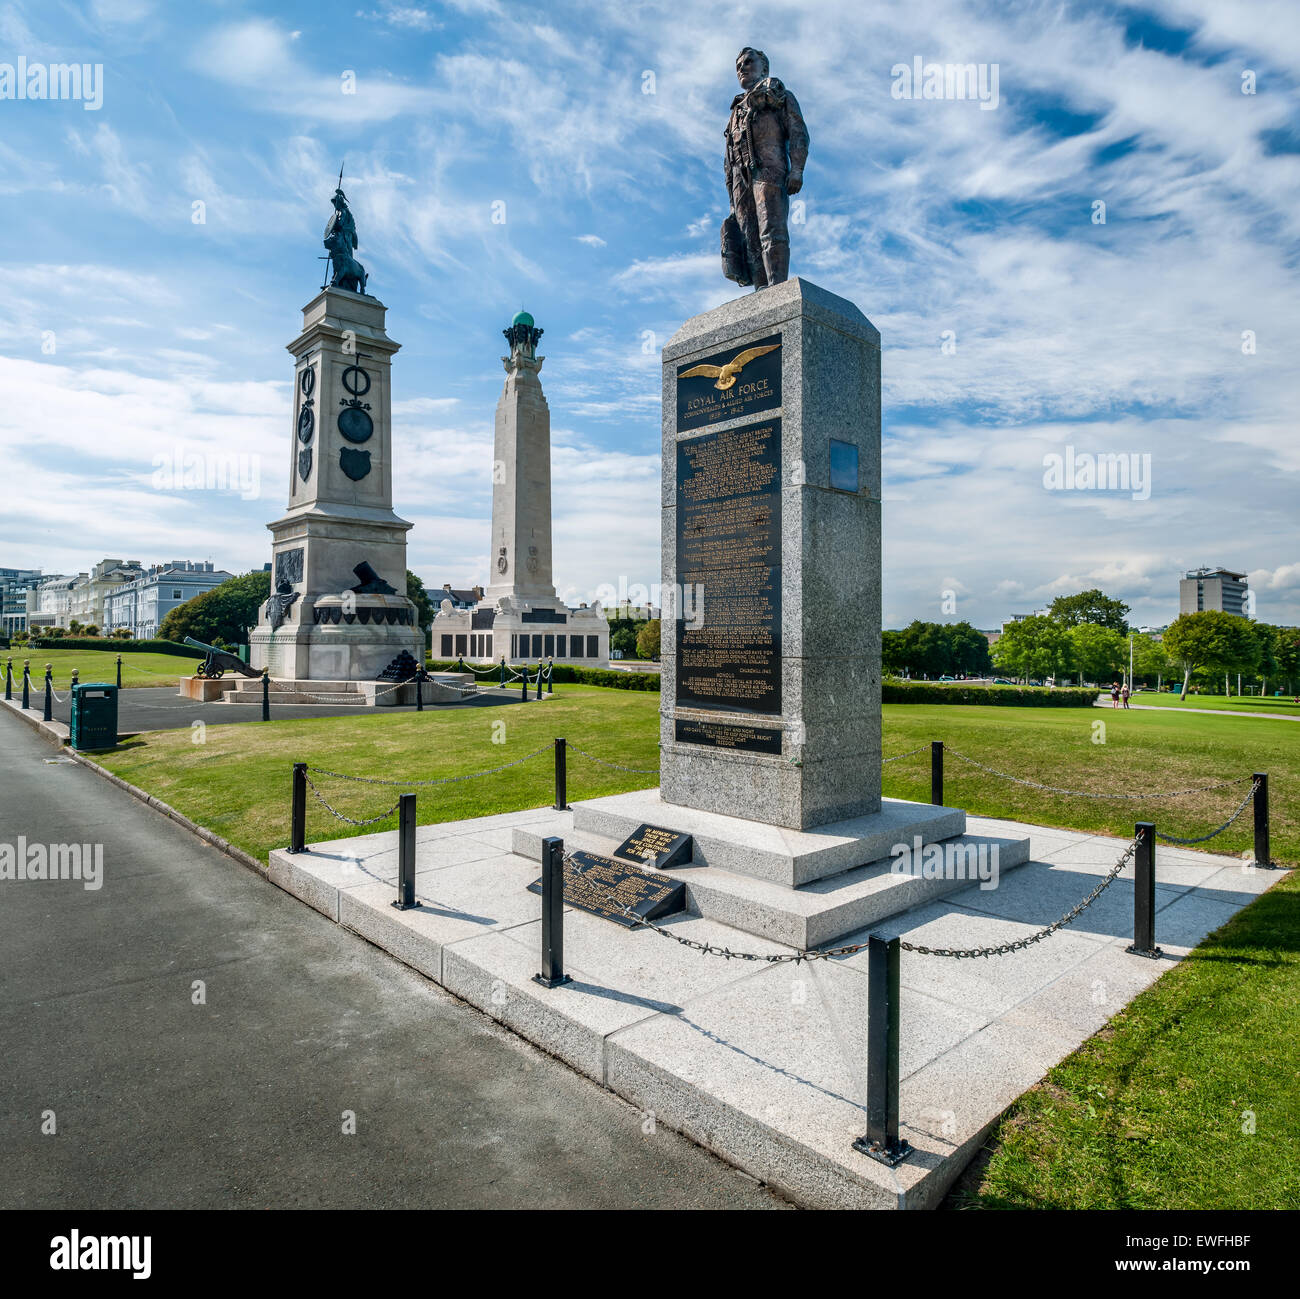 The war memorials situated centrally on The Hoe facing towards Plymouth Sound. - Stock Image